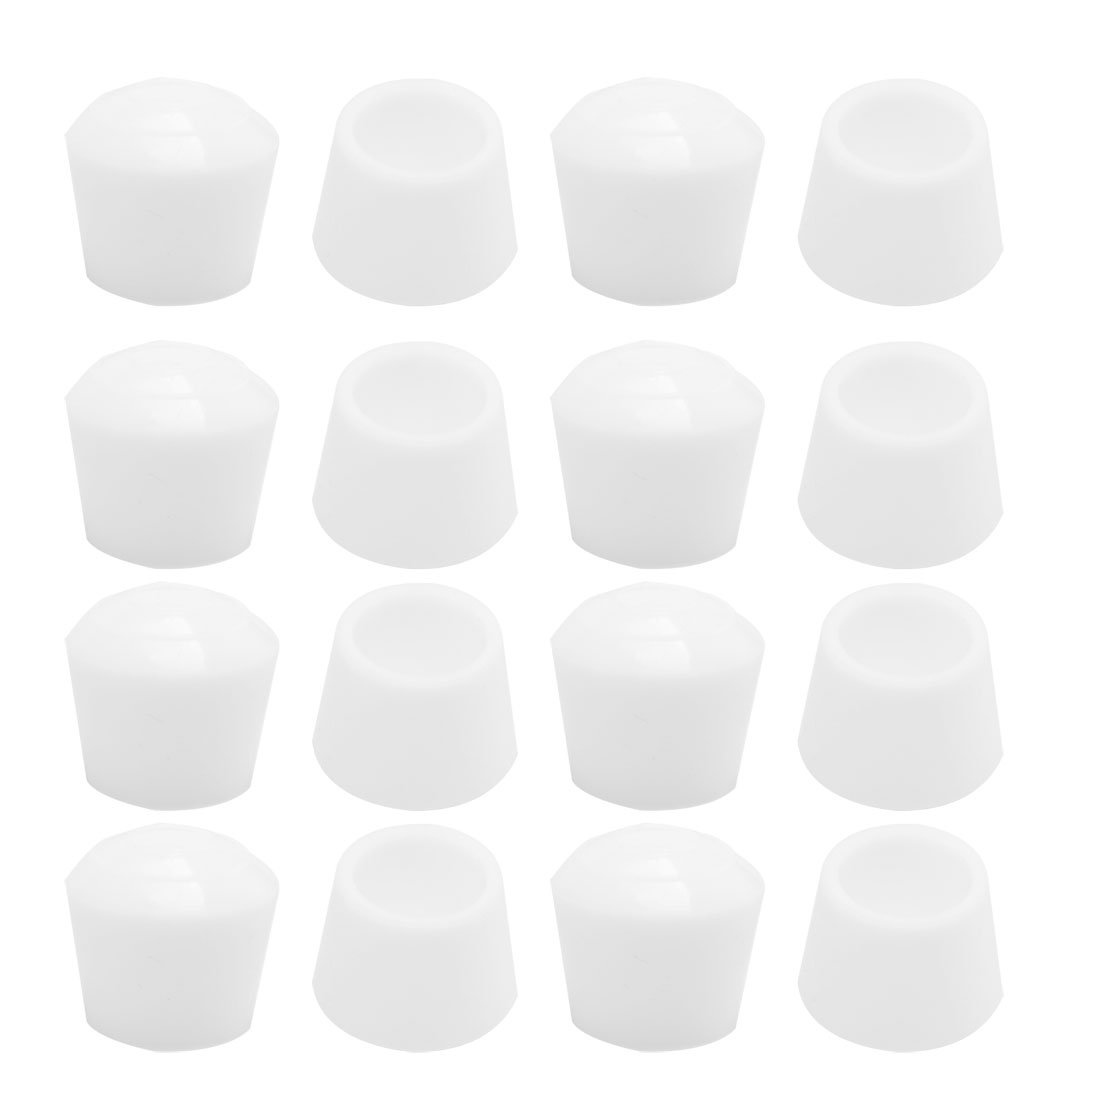 "Rubber Leg Cap Tip Cup Feet Cover 18mm 5/7"" Inner Dia 16pcs for Furniture Desk"